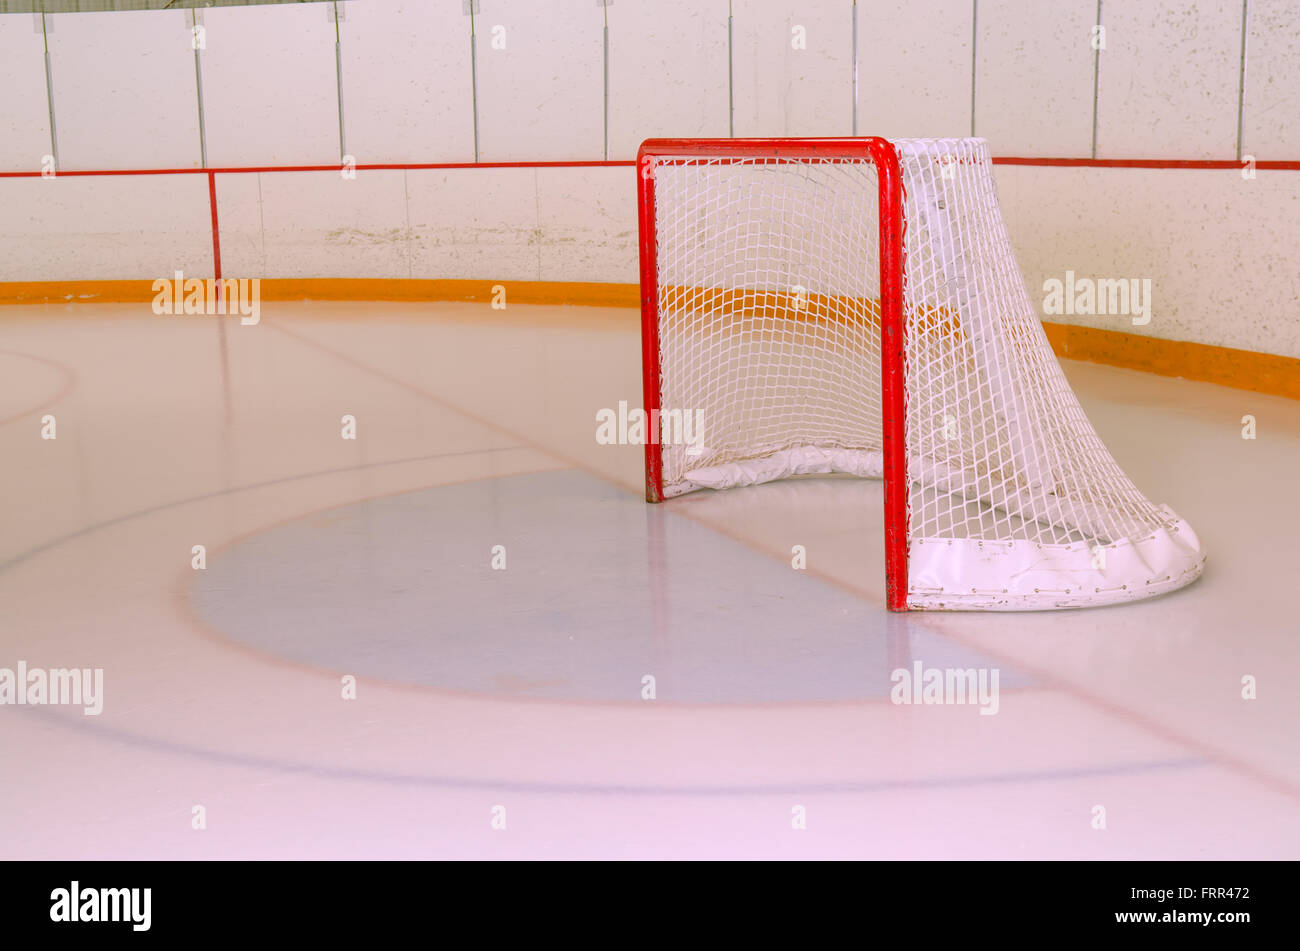 A Typical Hockey or Ringette Arena Net in the Crease of Hockey Rink - Stock Image